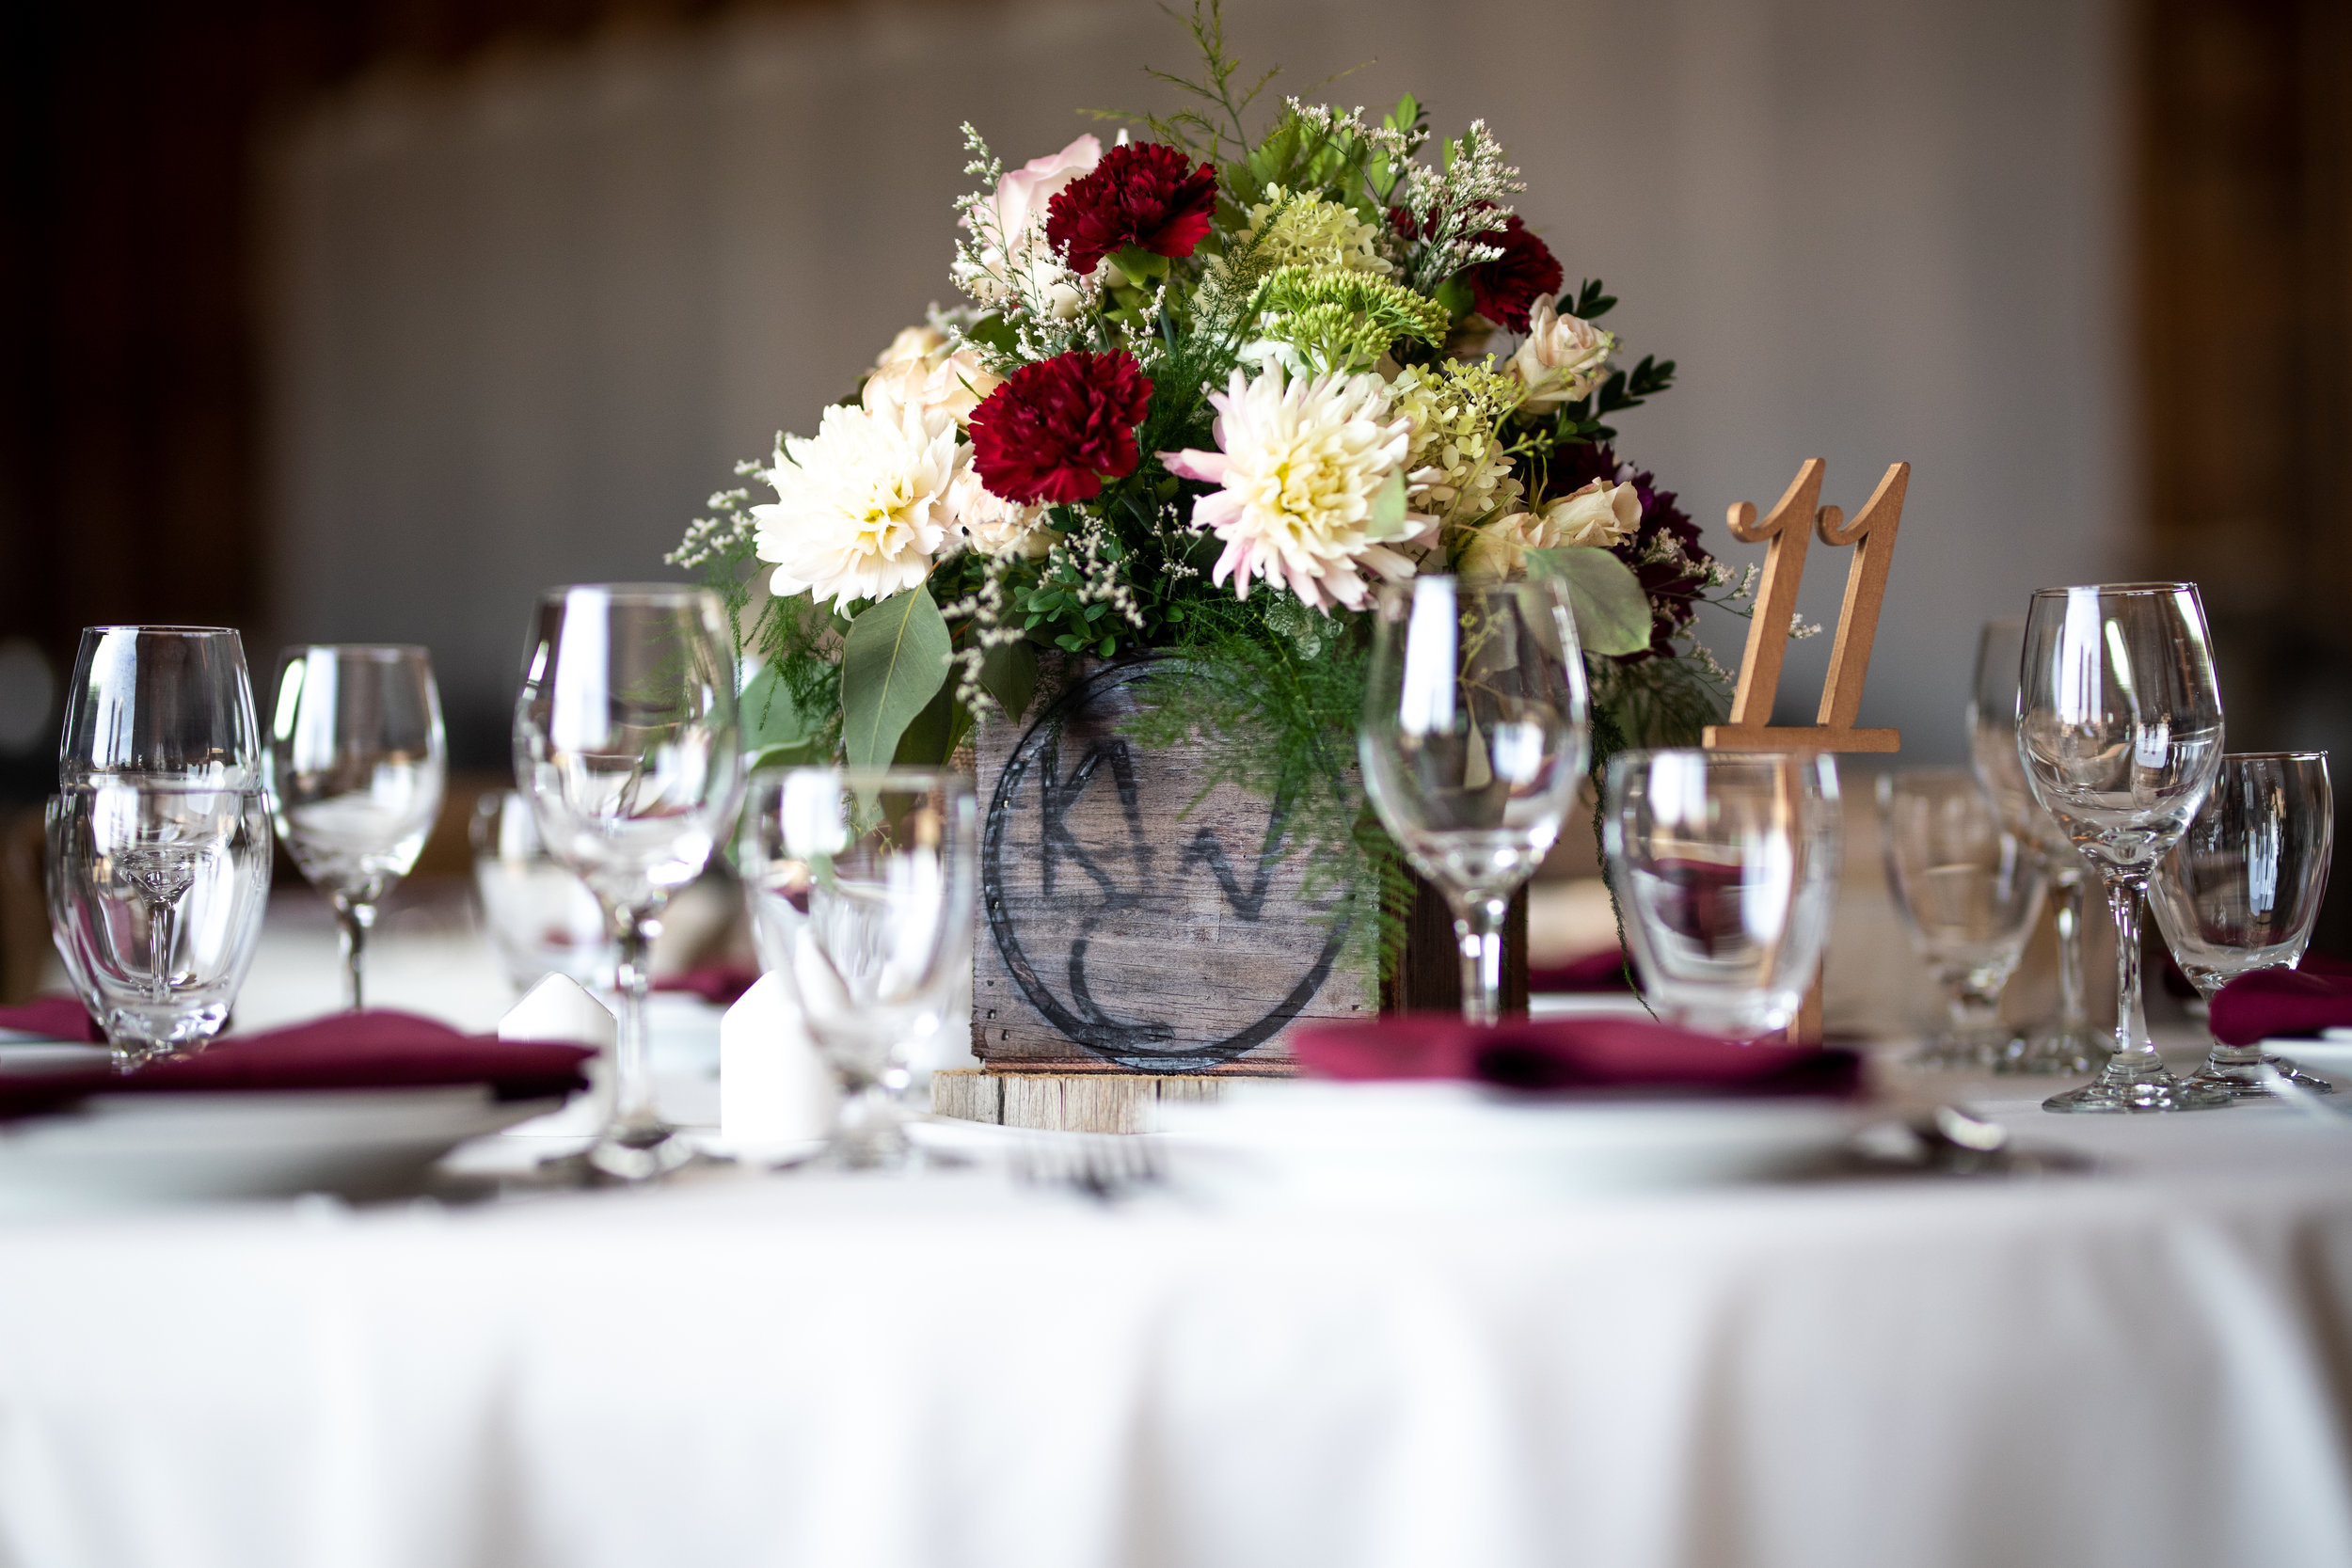 Details-Table-Wedding-Jodie-Aldred-Photography-Chatham-Kent-Elgin-Middlesex-London-Ontario.JPG